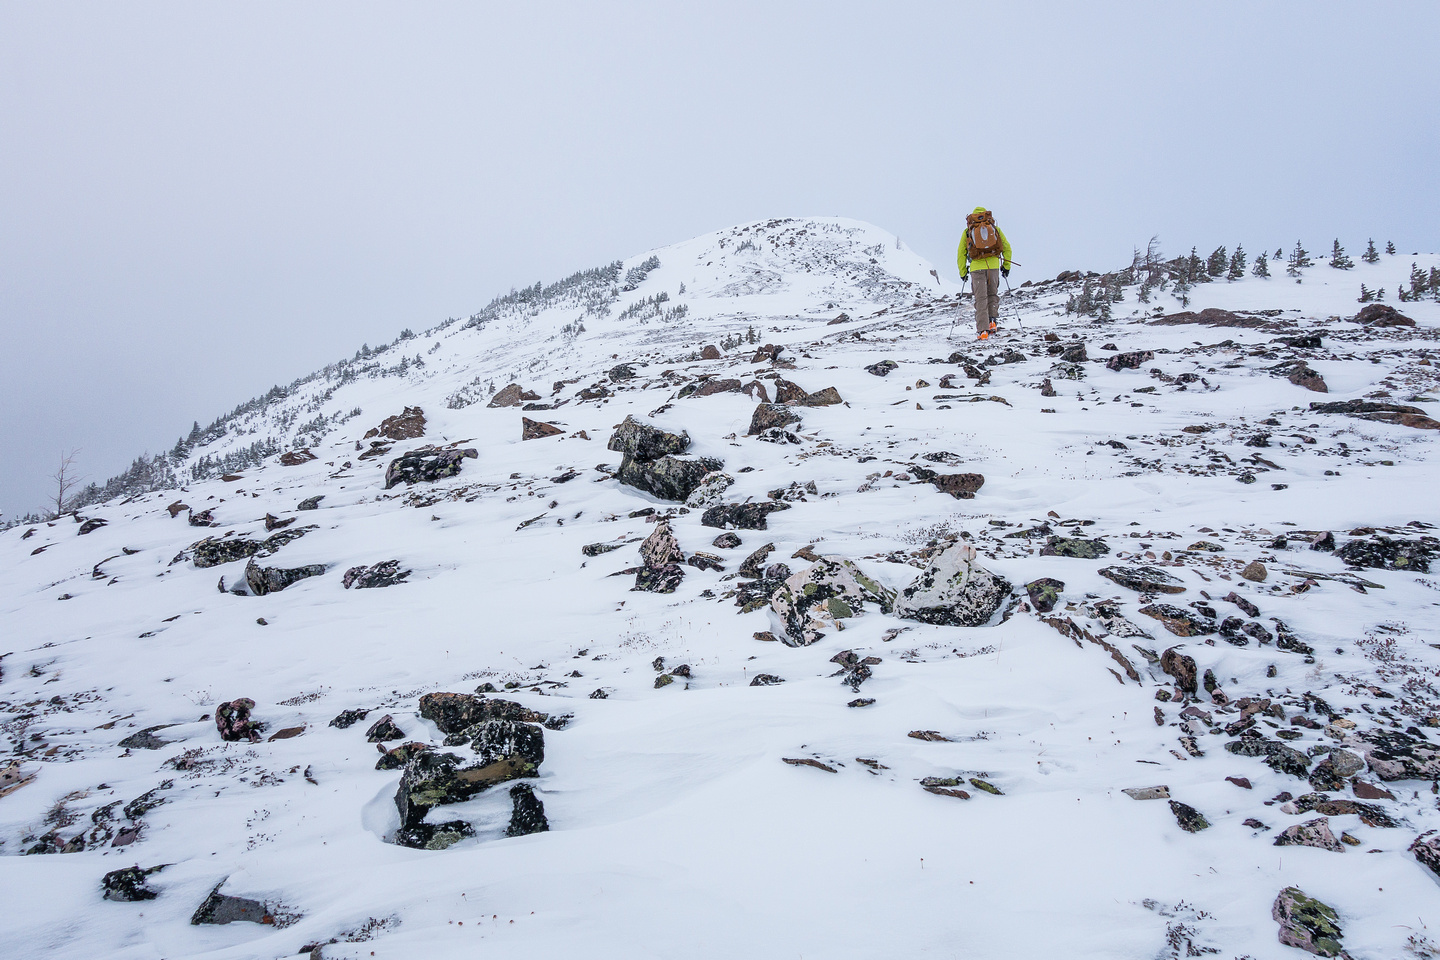 Wietse plods up scree and boulders to the summit.